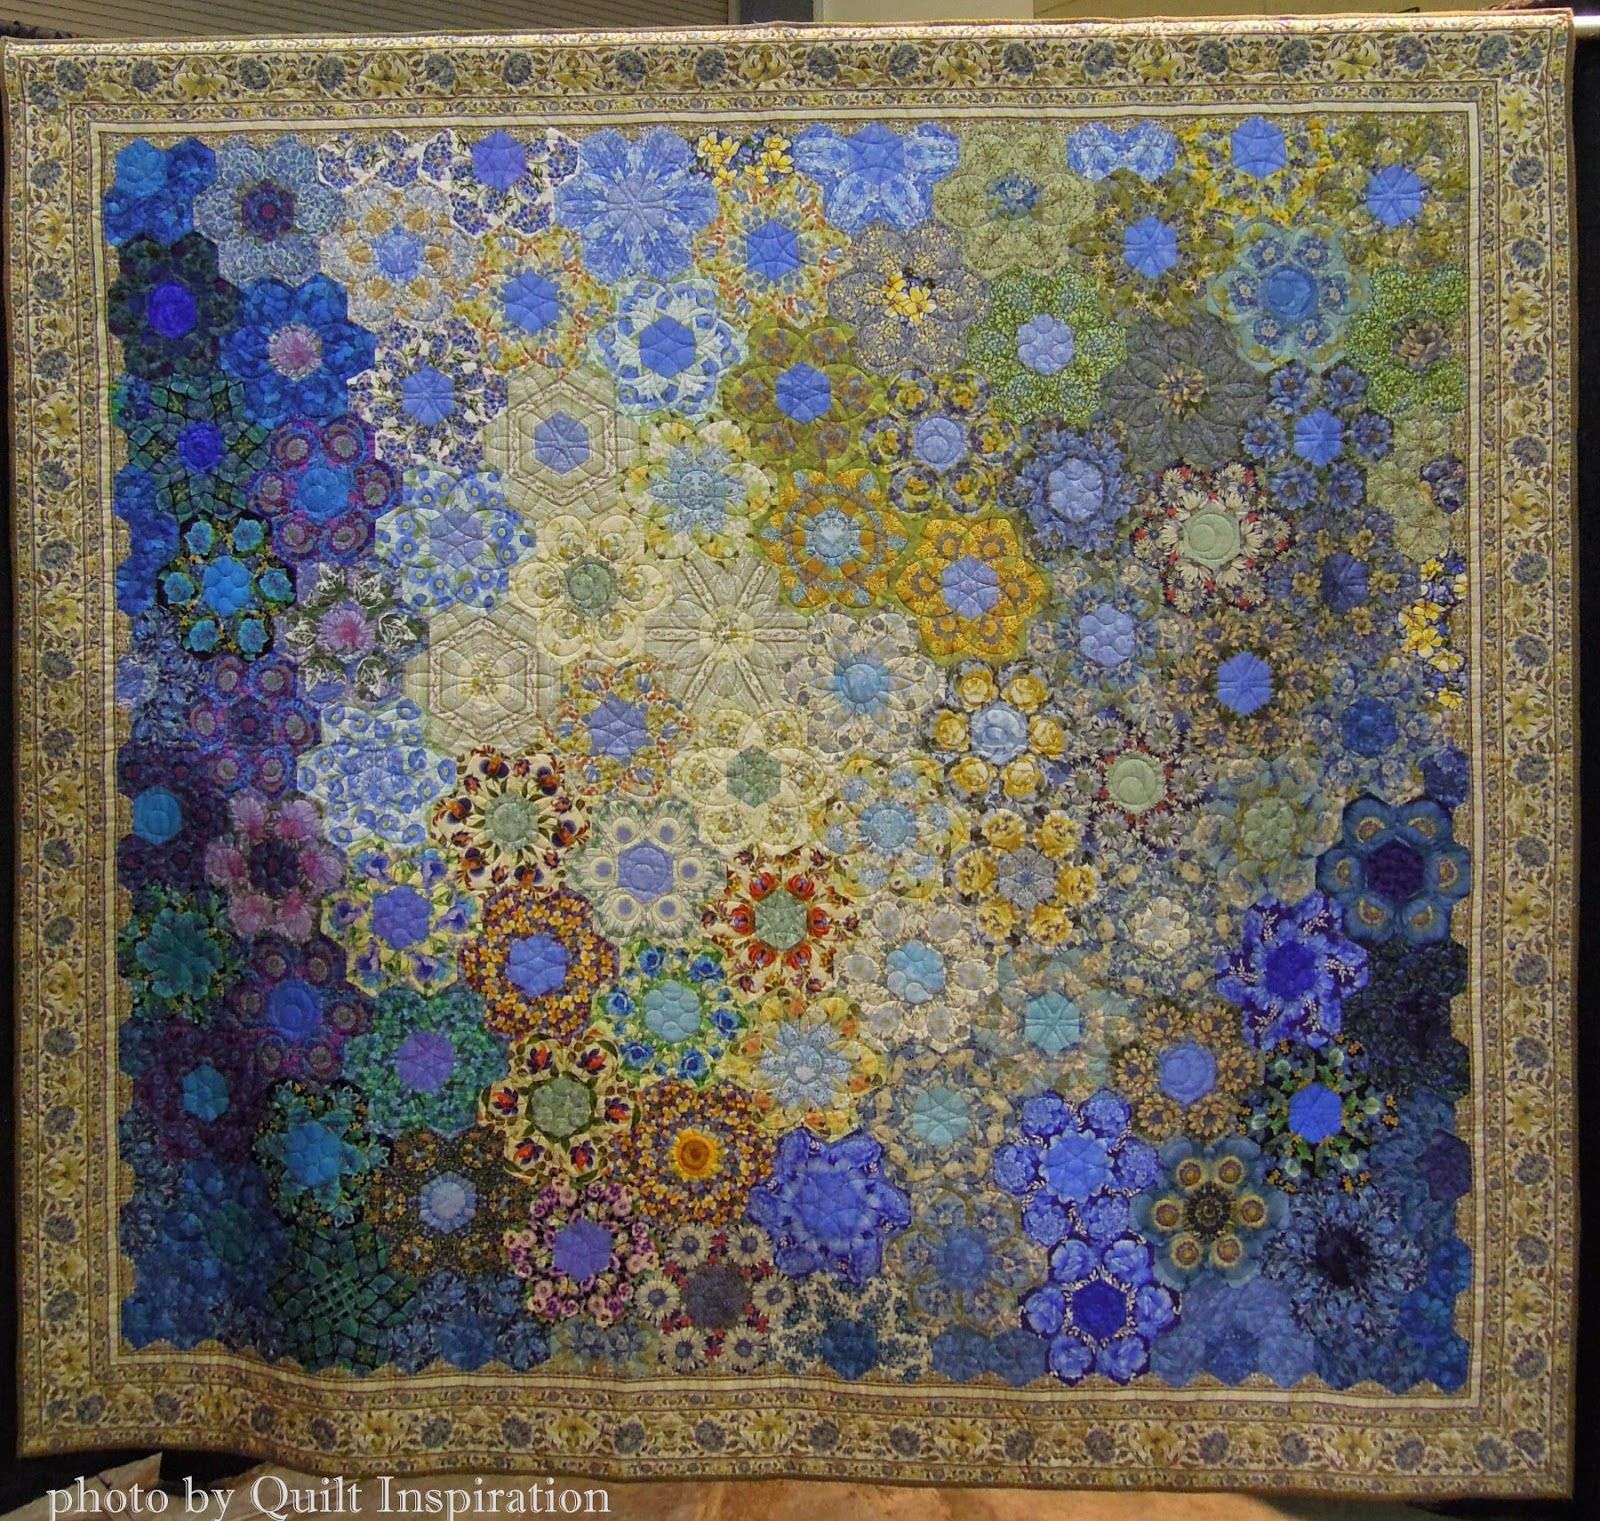 Quilt Inspiration: Best of the 2015 World Quilt Show in Florida ... : quilt shows in florida - Adamdwight.com